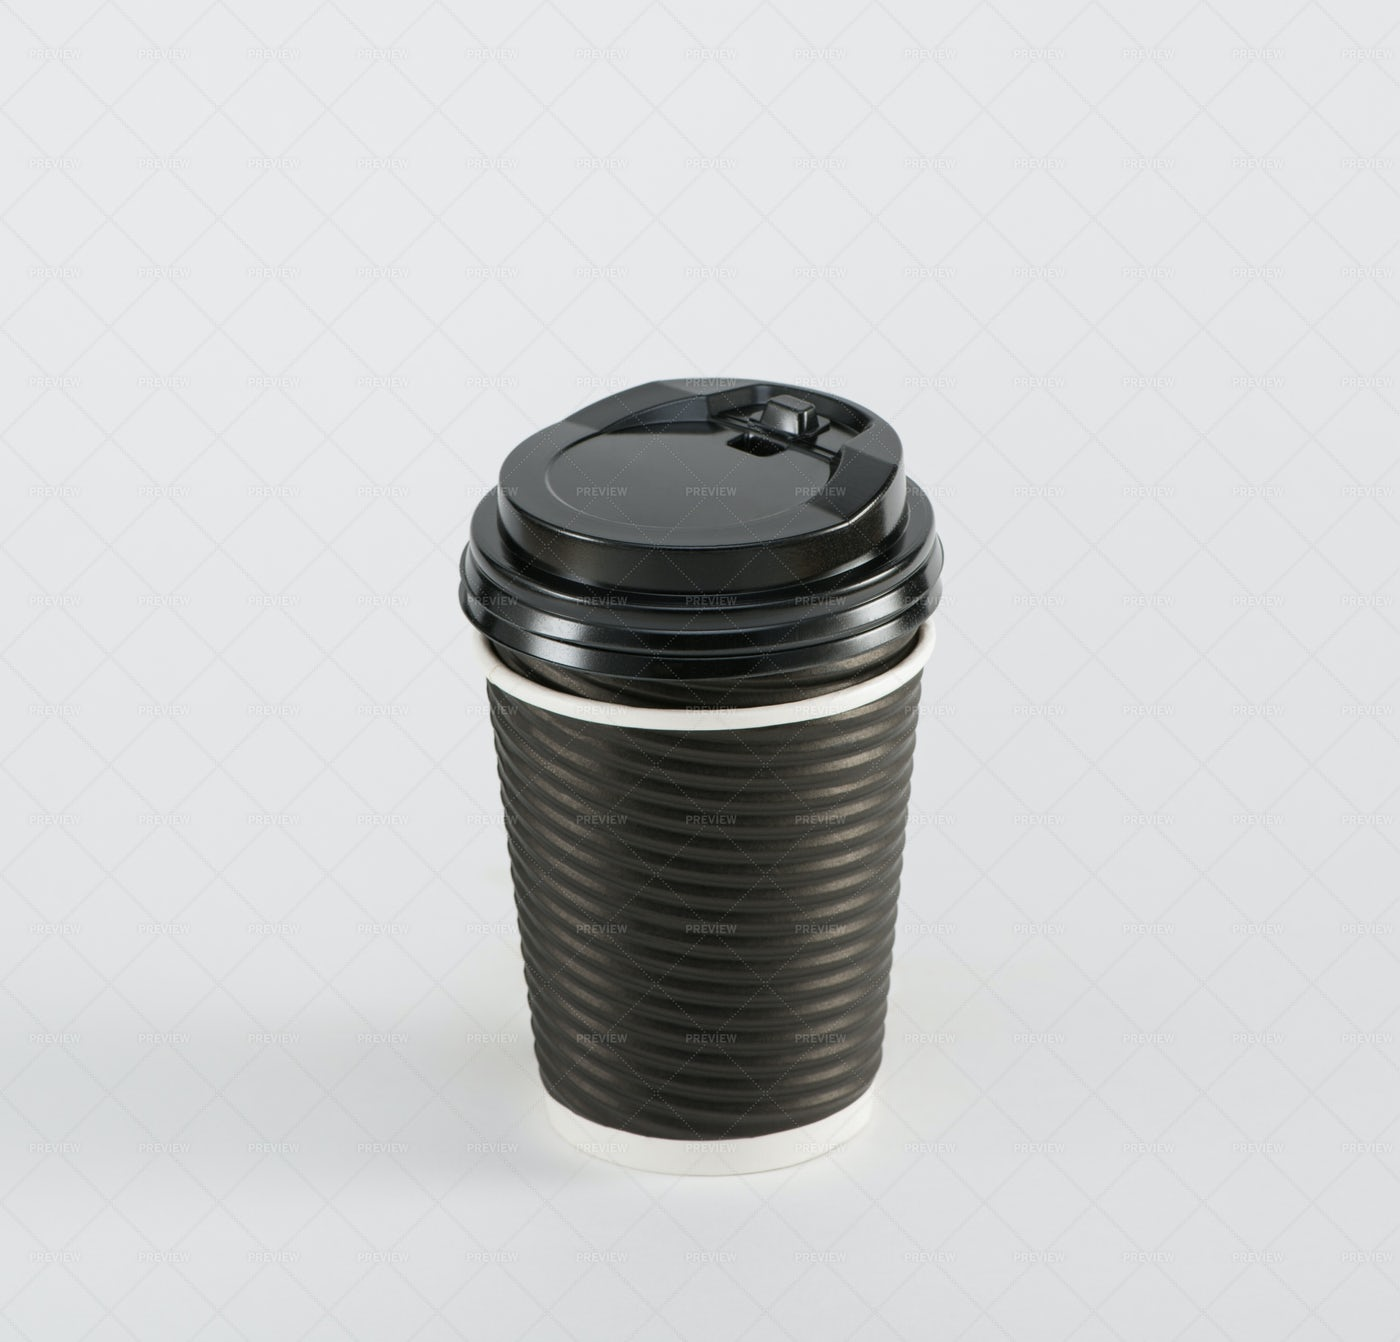 Paper Cup For Coffee: Stock Photos